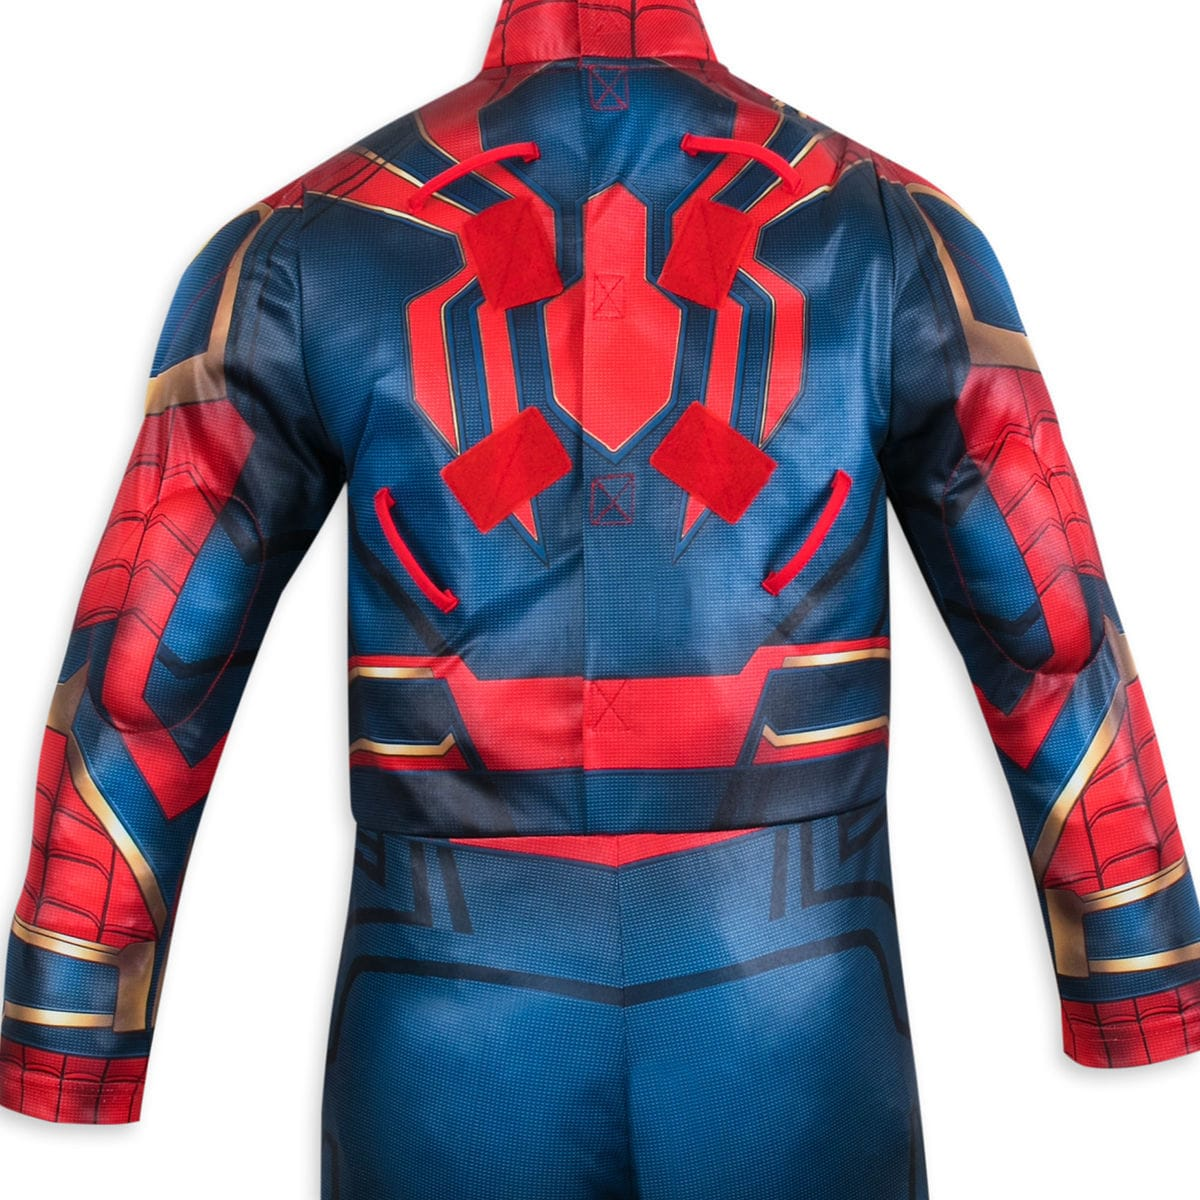 Product Image of Iron Spider Costume for Kids - Marvel s Avengers  Infinity  War   8 3bc3e2284fe59